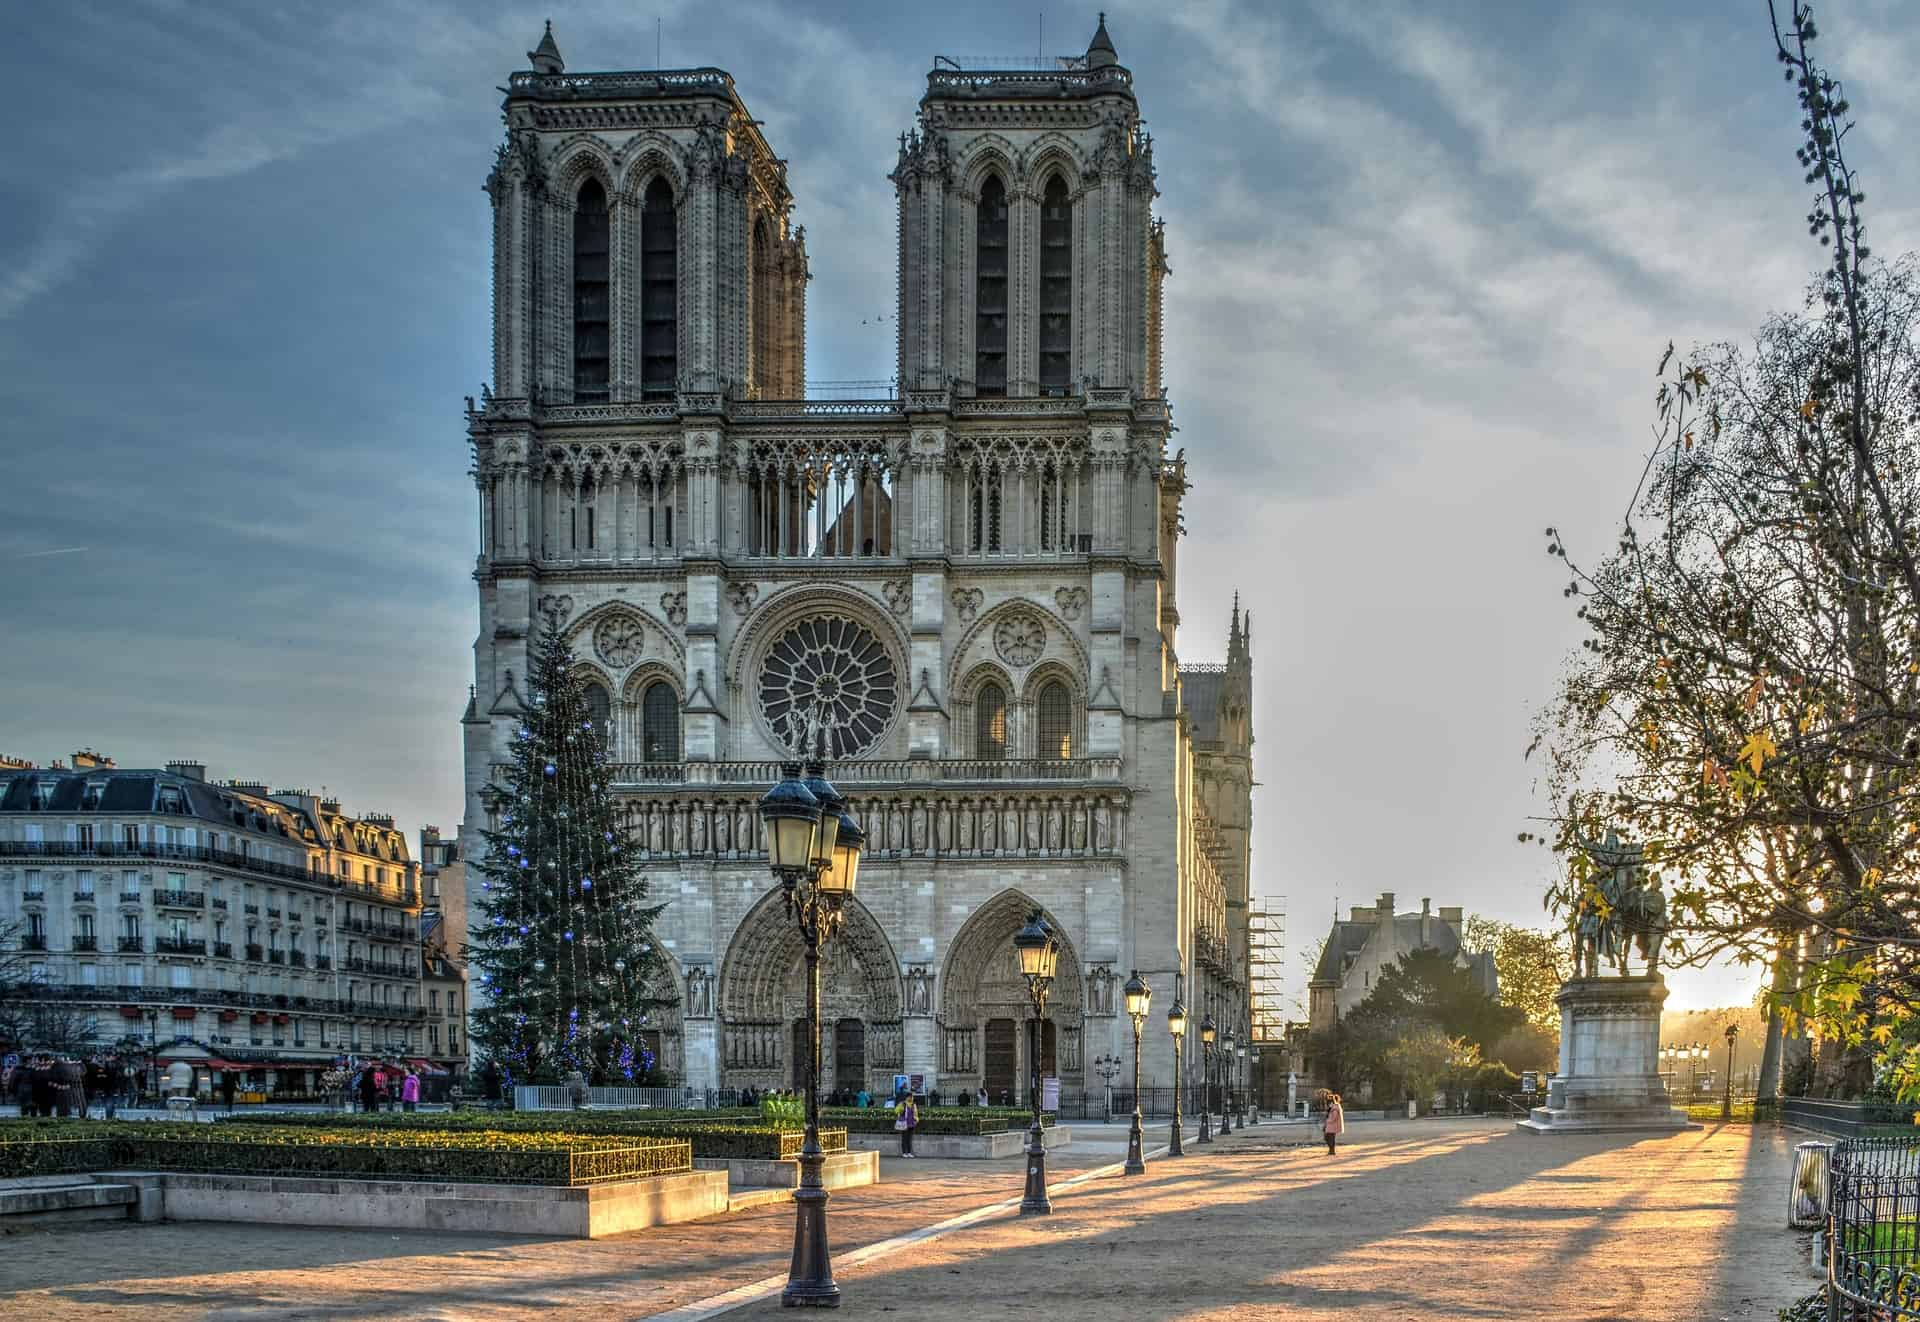 The Notre Dame Cathedral of Paris, one of the top France pilgrimage sites.